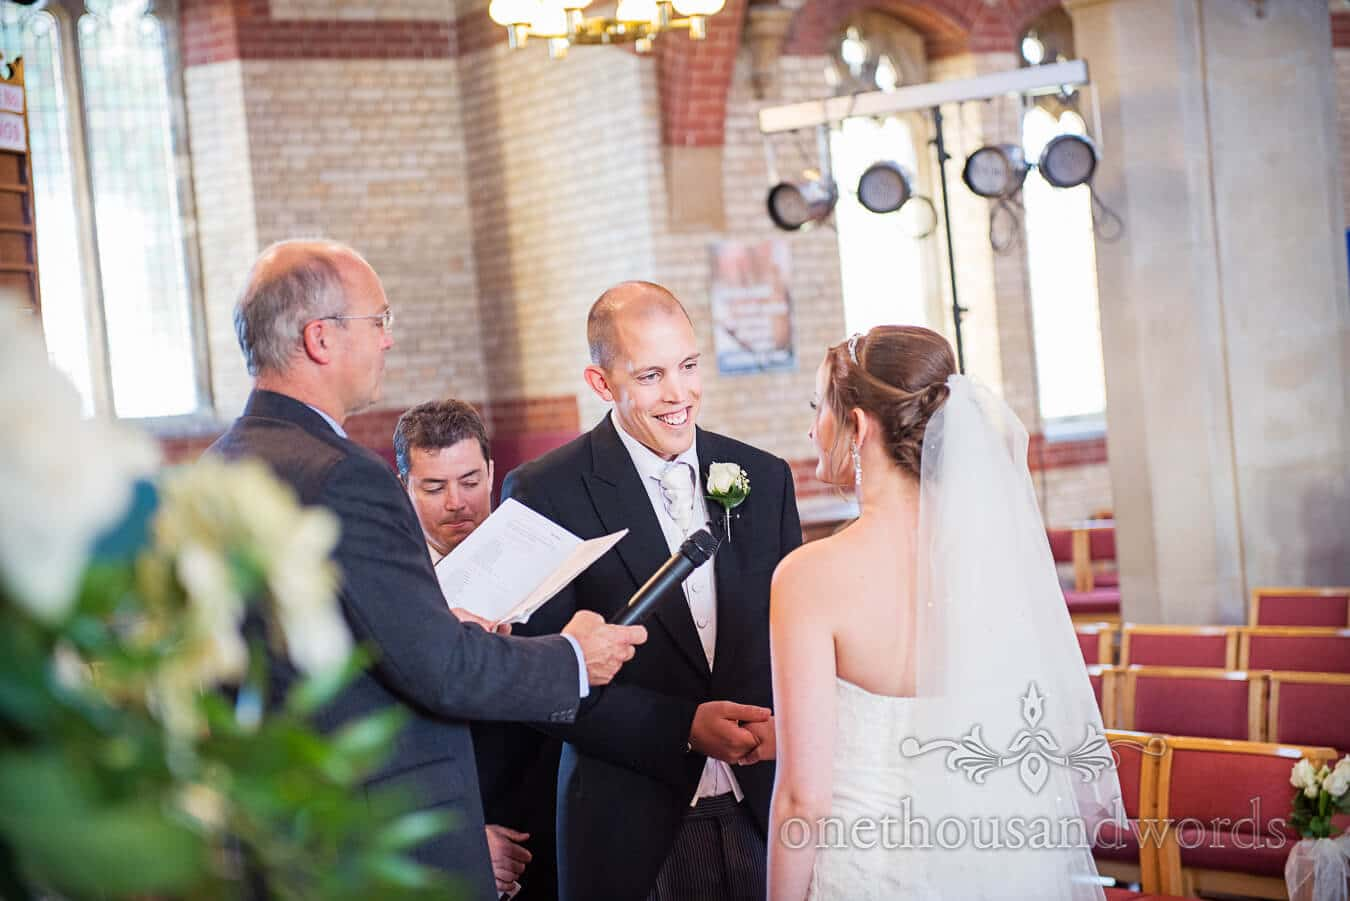 Groom making vows in church wedding ceremony in Poole